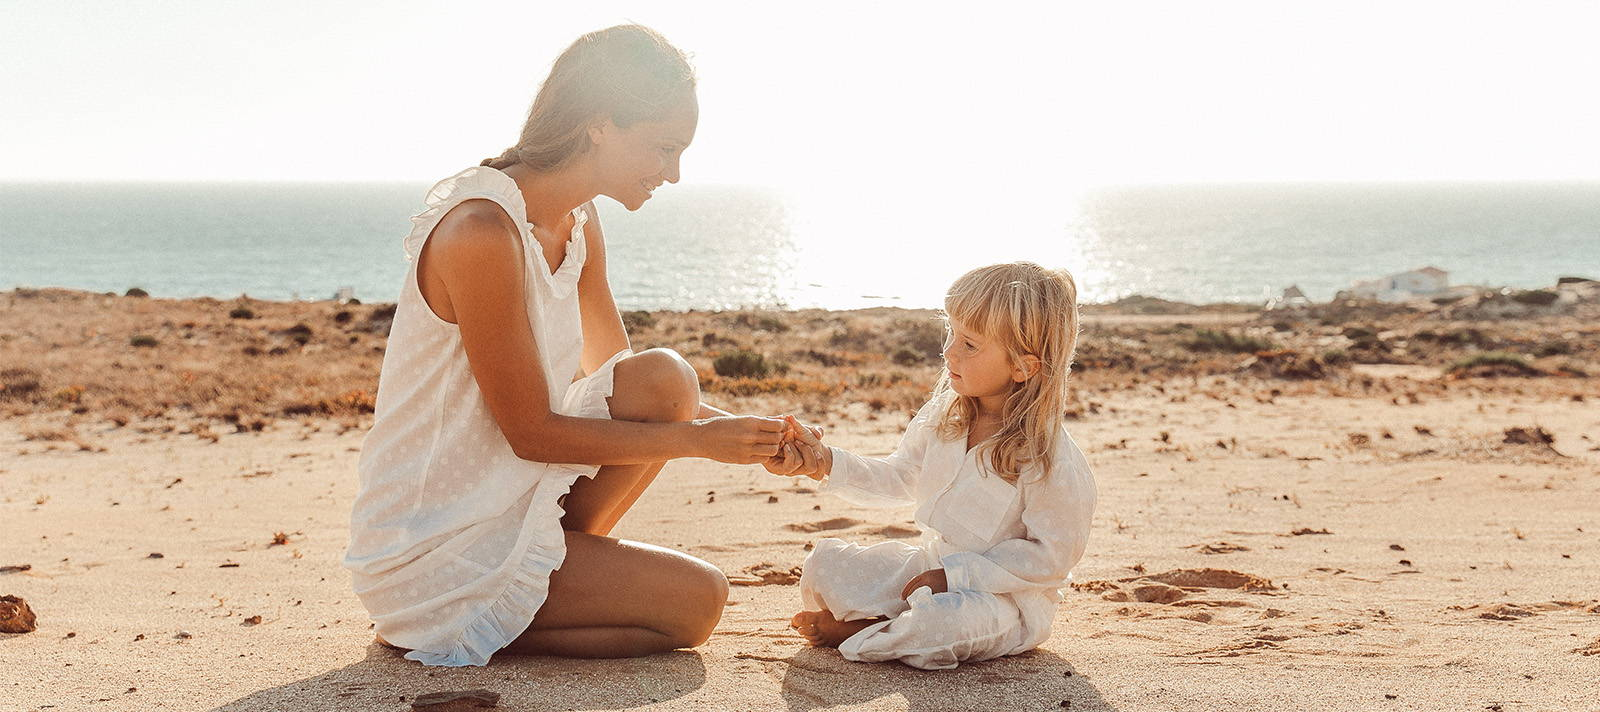 Mother and daughter sharing a secret on the beach matching in  a white cotton nightie and pyjamas